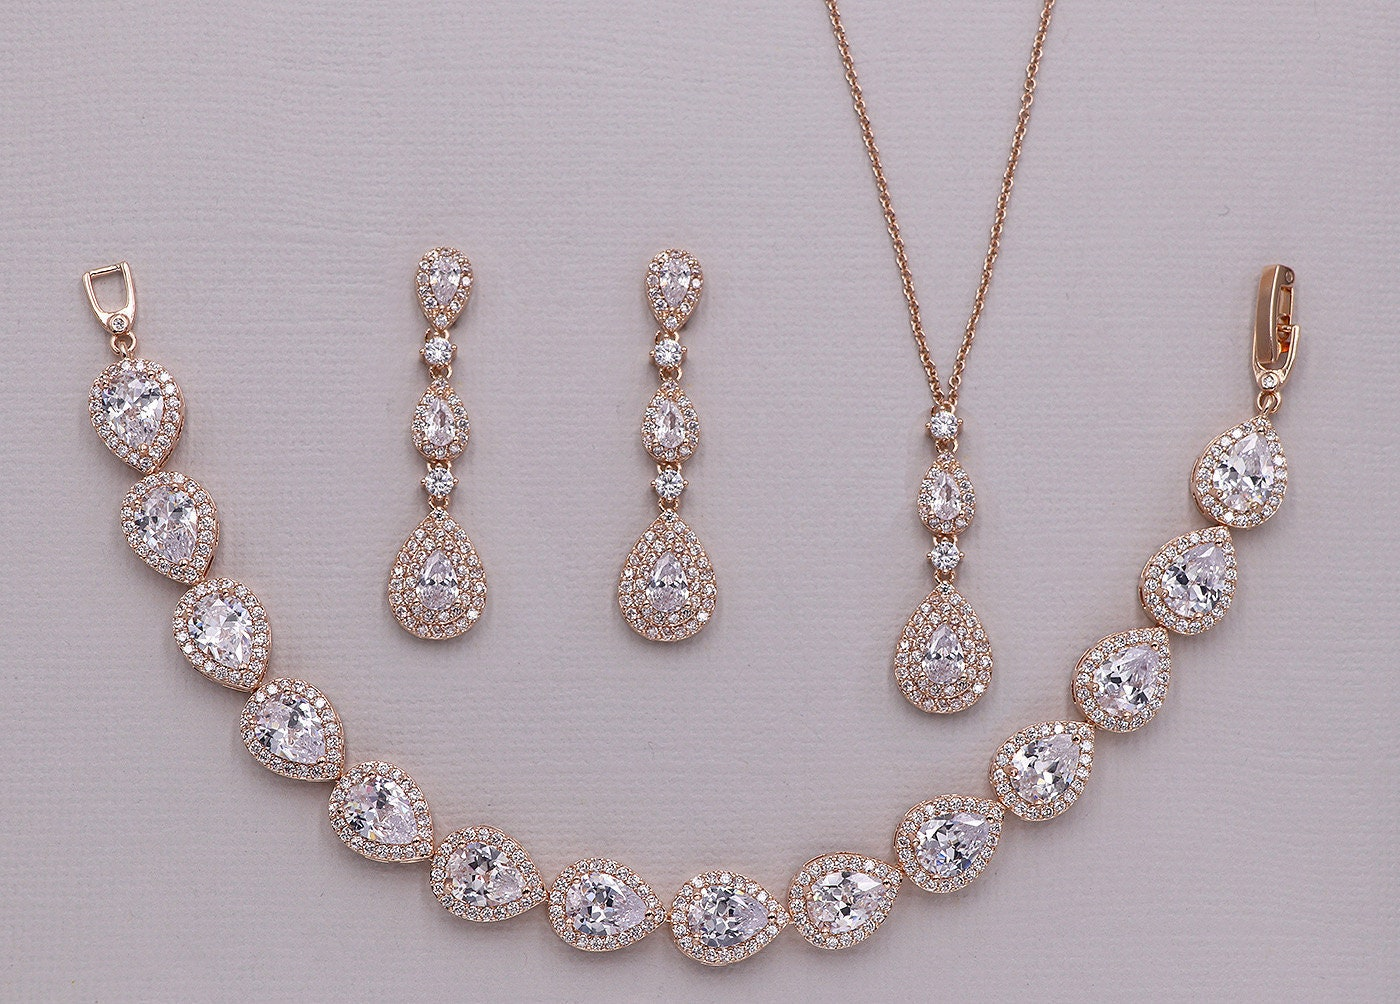 Jewelry & Watches Jewelry Sets Rose gold Jewellery set with gold colour cubic zirconias quality UK jewellery